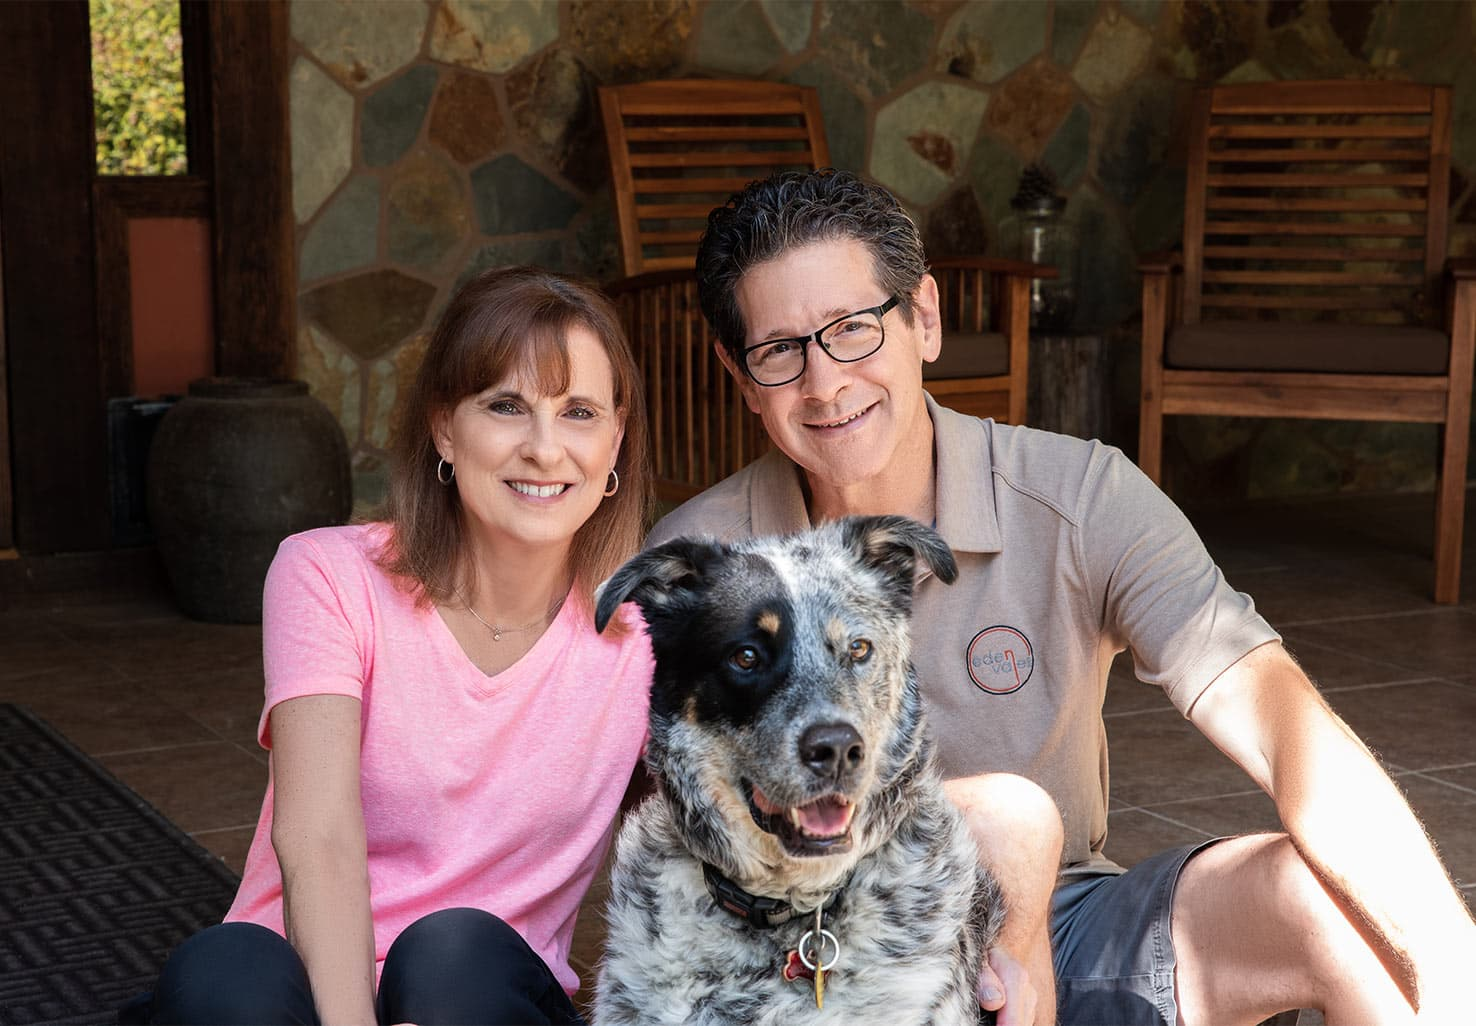 The Innkeepers David and Karen with their dog Sam